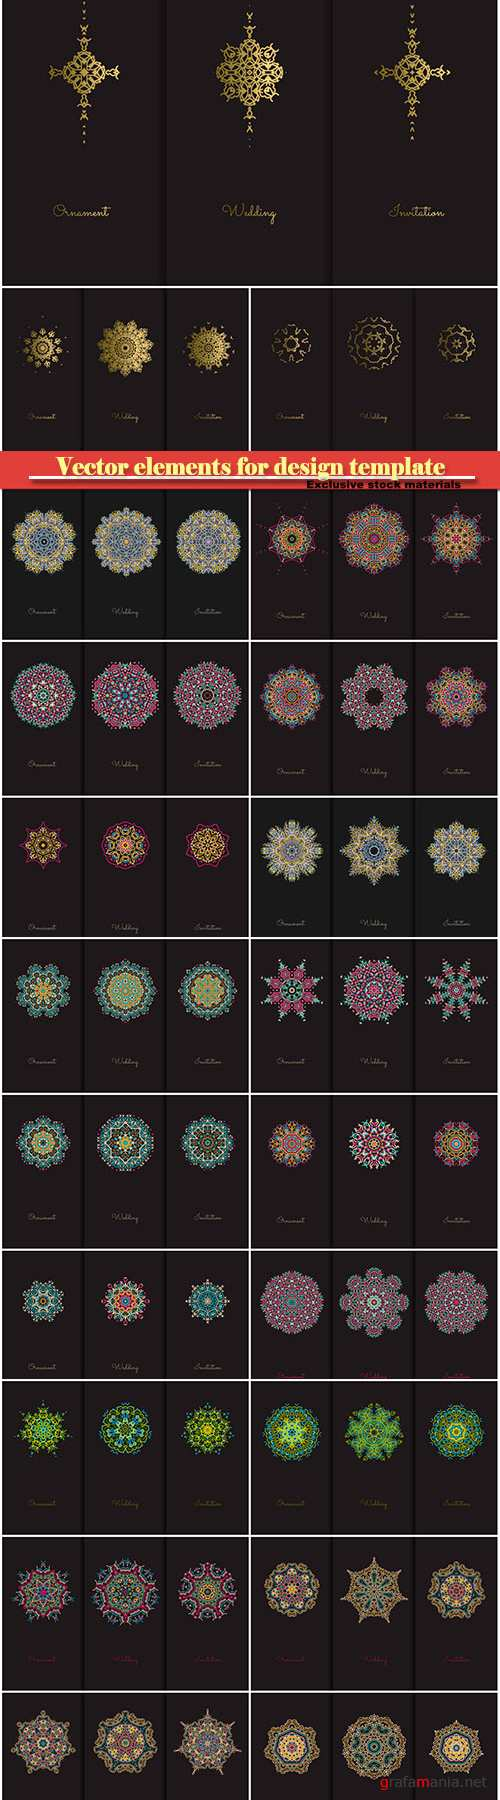 Vector elements for design template, ornate decor for invitations, greeting cards, certificate, labels, badges, tags